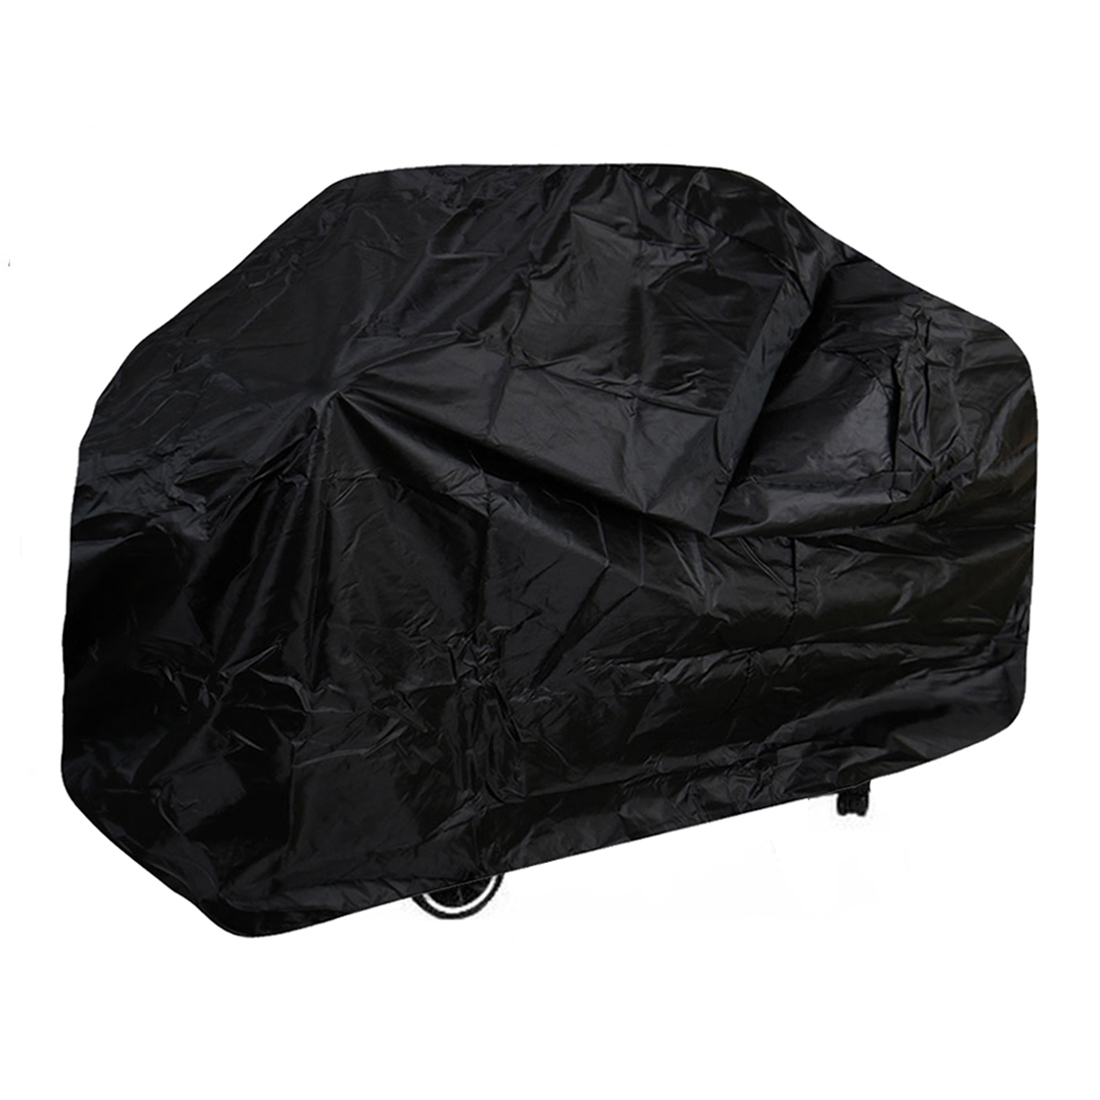 Outdoor Garden Breathable BBQ Cover Water Resistant Barbecue Grill Protector Black S